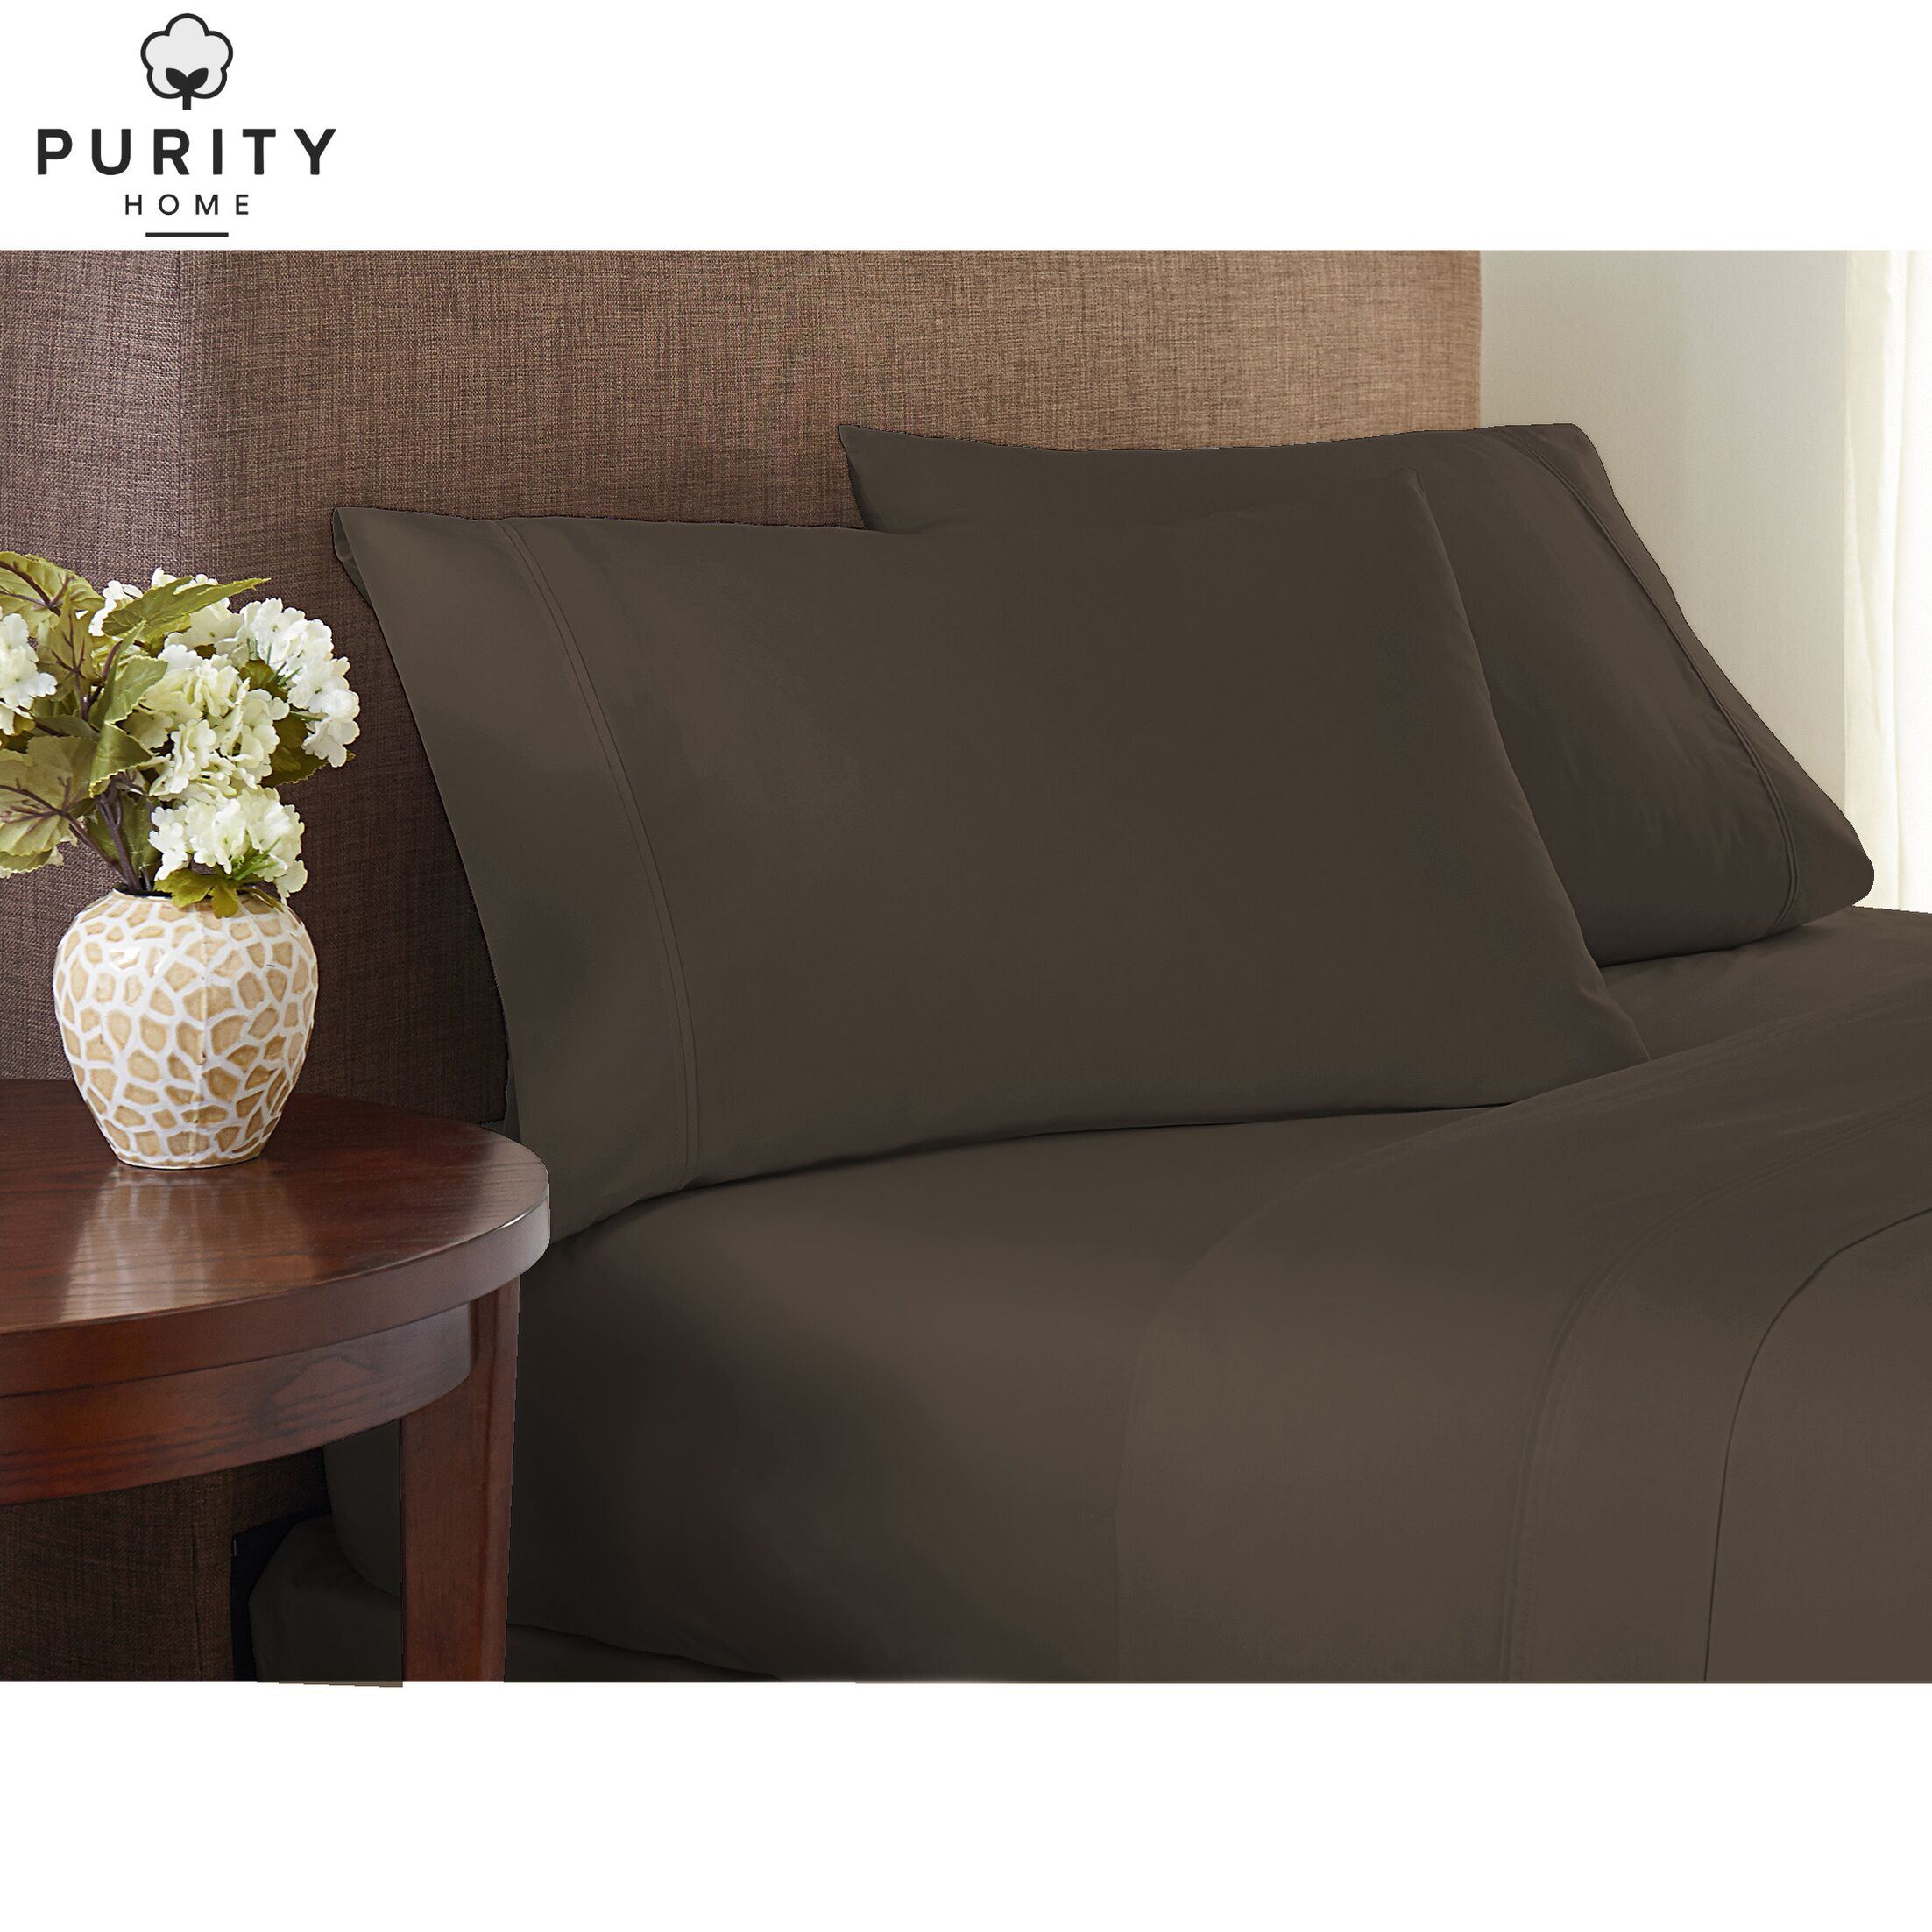 Purity Home 200 Thread Count 100% Cotton Sheet Set Size: Queen, Color: Stone